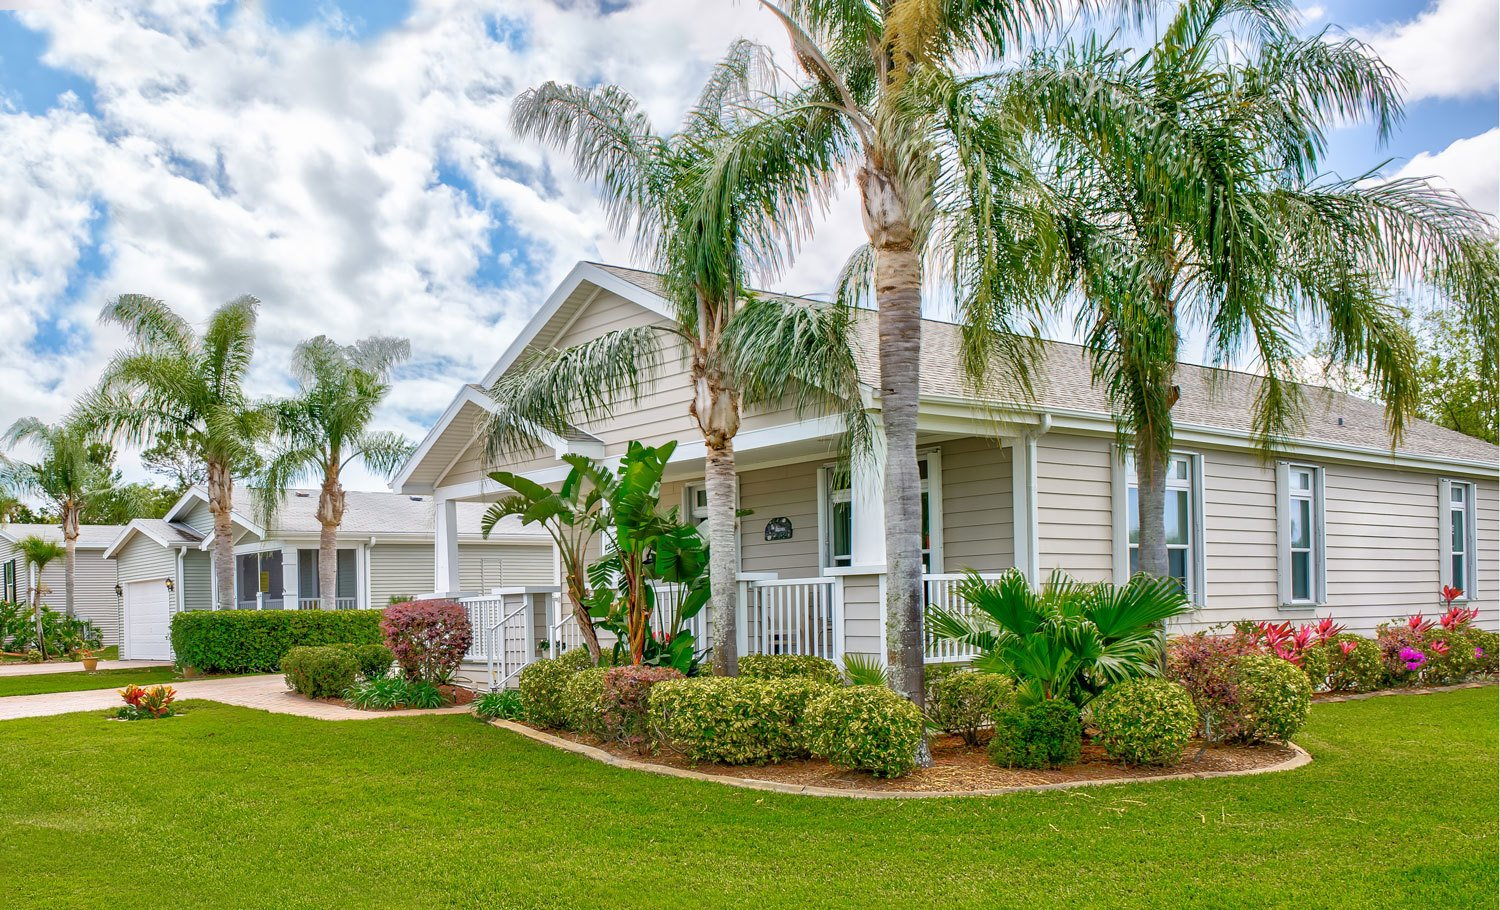 Active 55+ Manufactured Homes